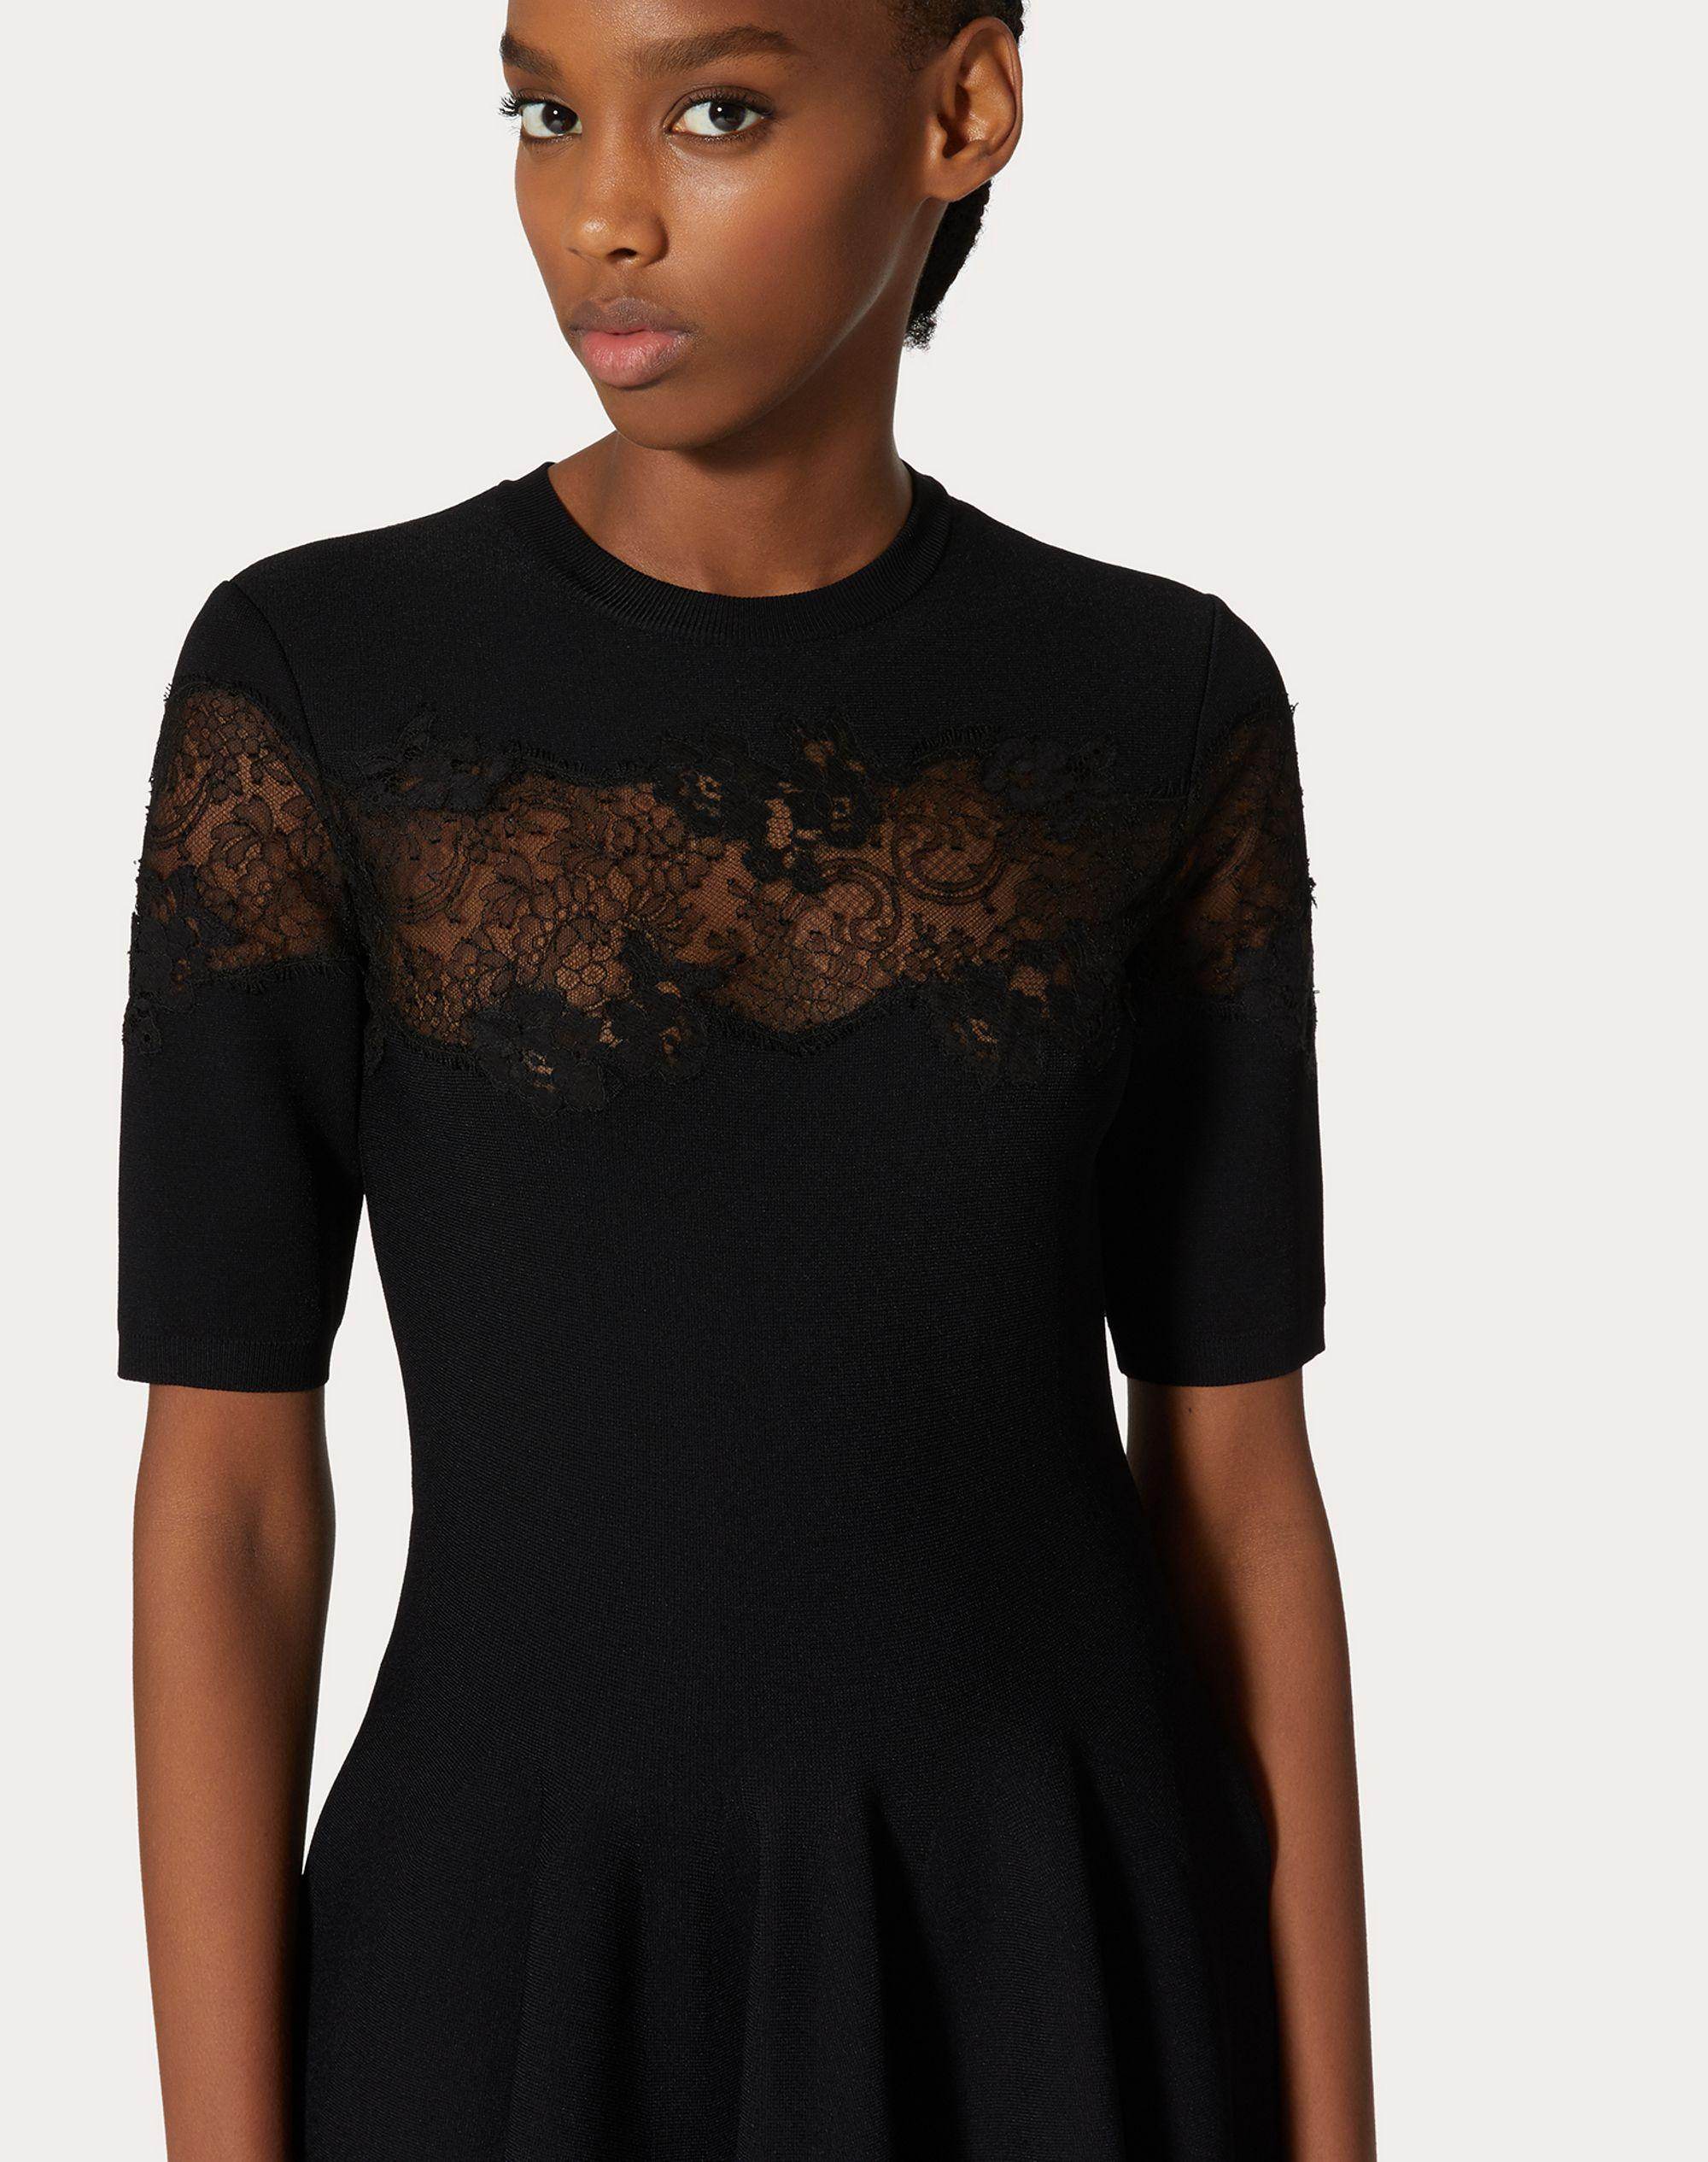 JERSEY DRESS IN STRETCHED VISCOSE AND LACE 3